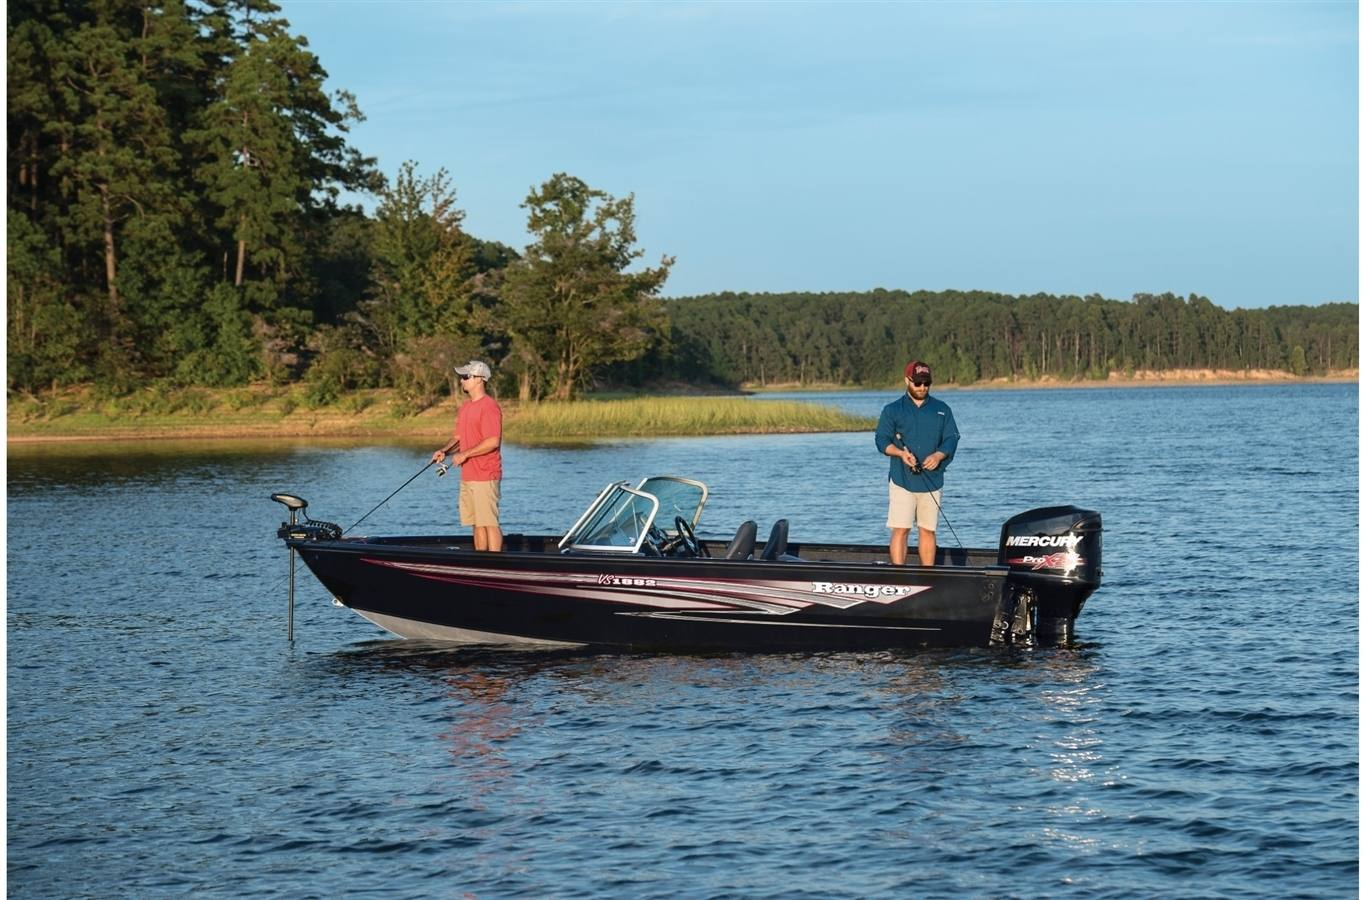 2019 Ranger VS1882 WT with two men fishing on it